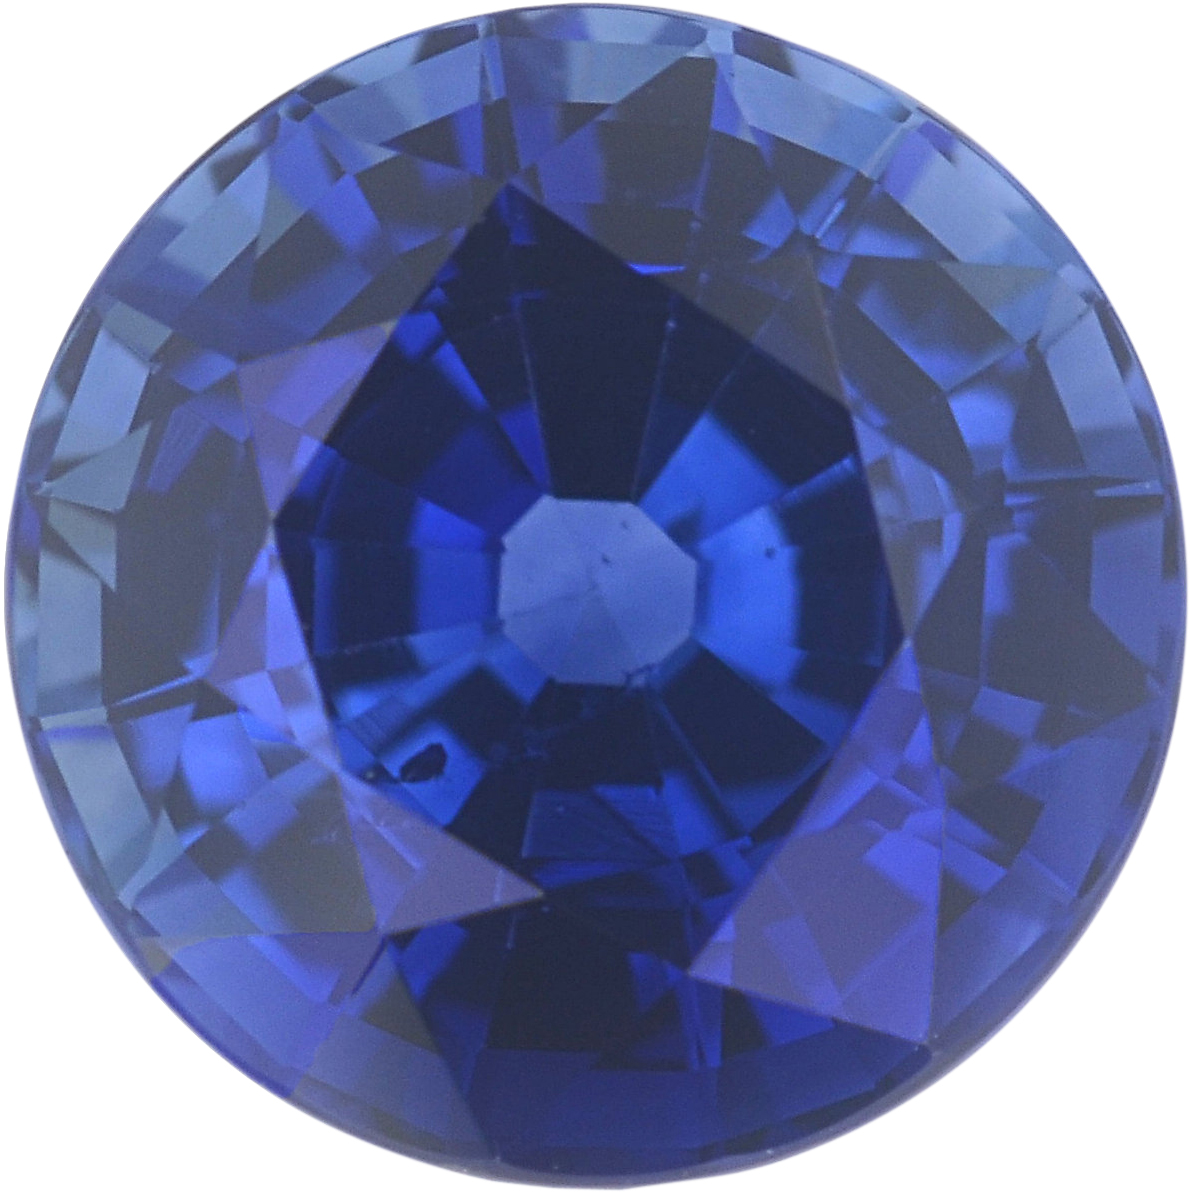 1.06 carats Blue Loose Sapphire Gemstone in Round Cut, 5.92 mm